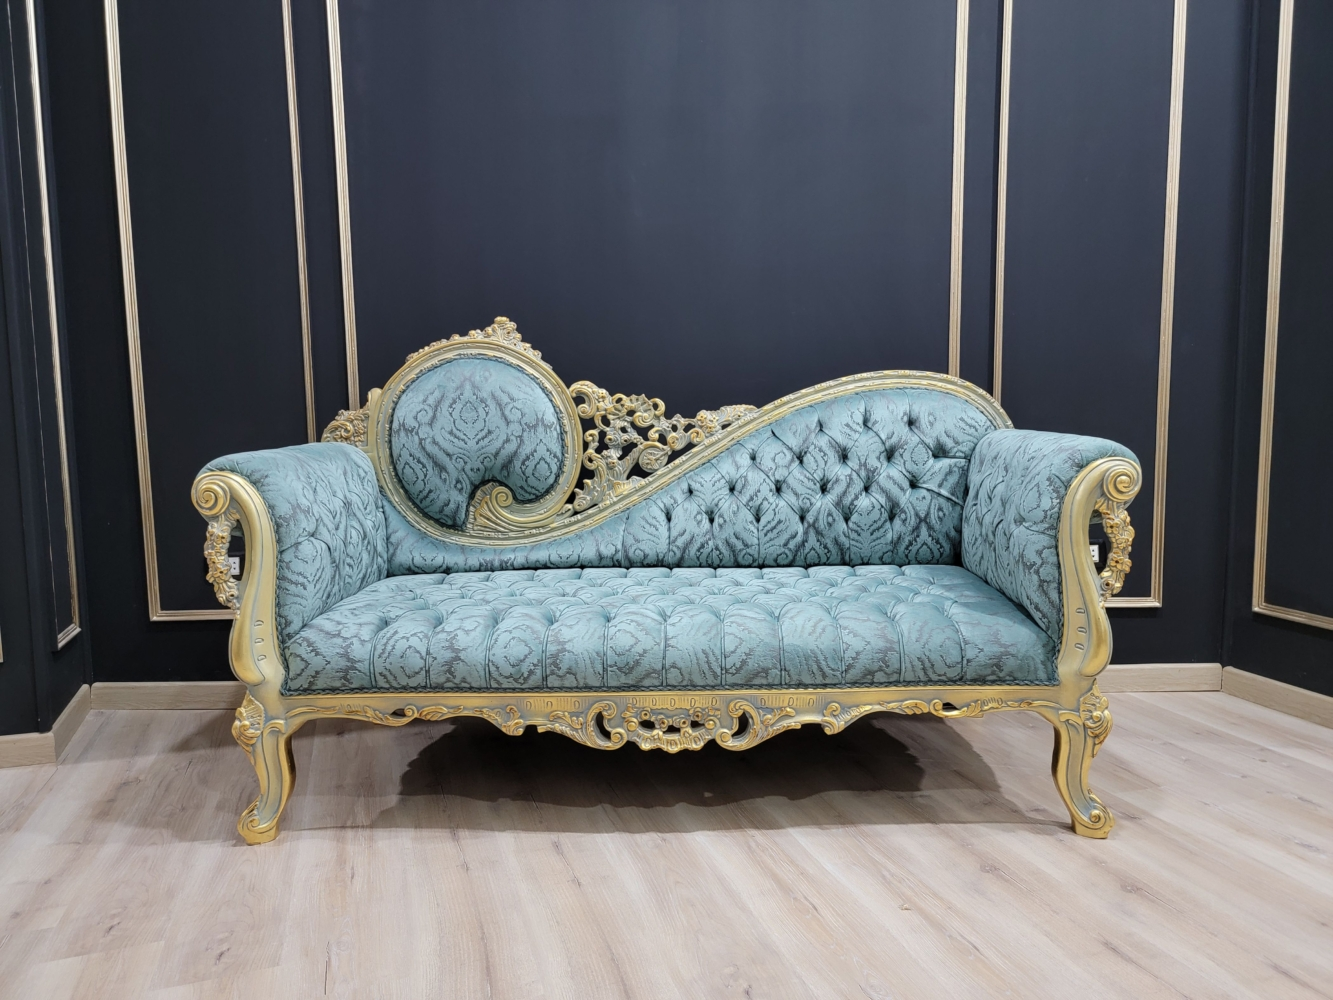 Victorian Style Sofa/Aged Gold Leaf Hand Carved Wood Frame /Tufted Cerulean Blue Velvet/Chaise Lounge